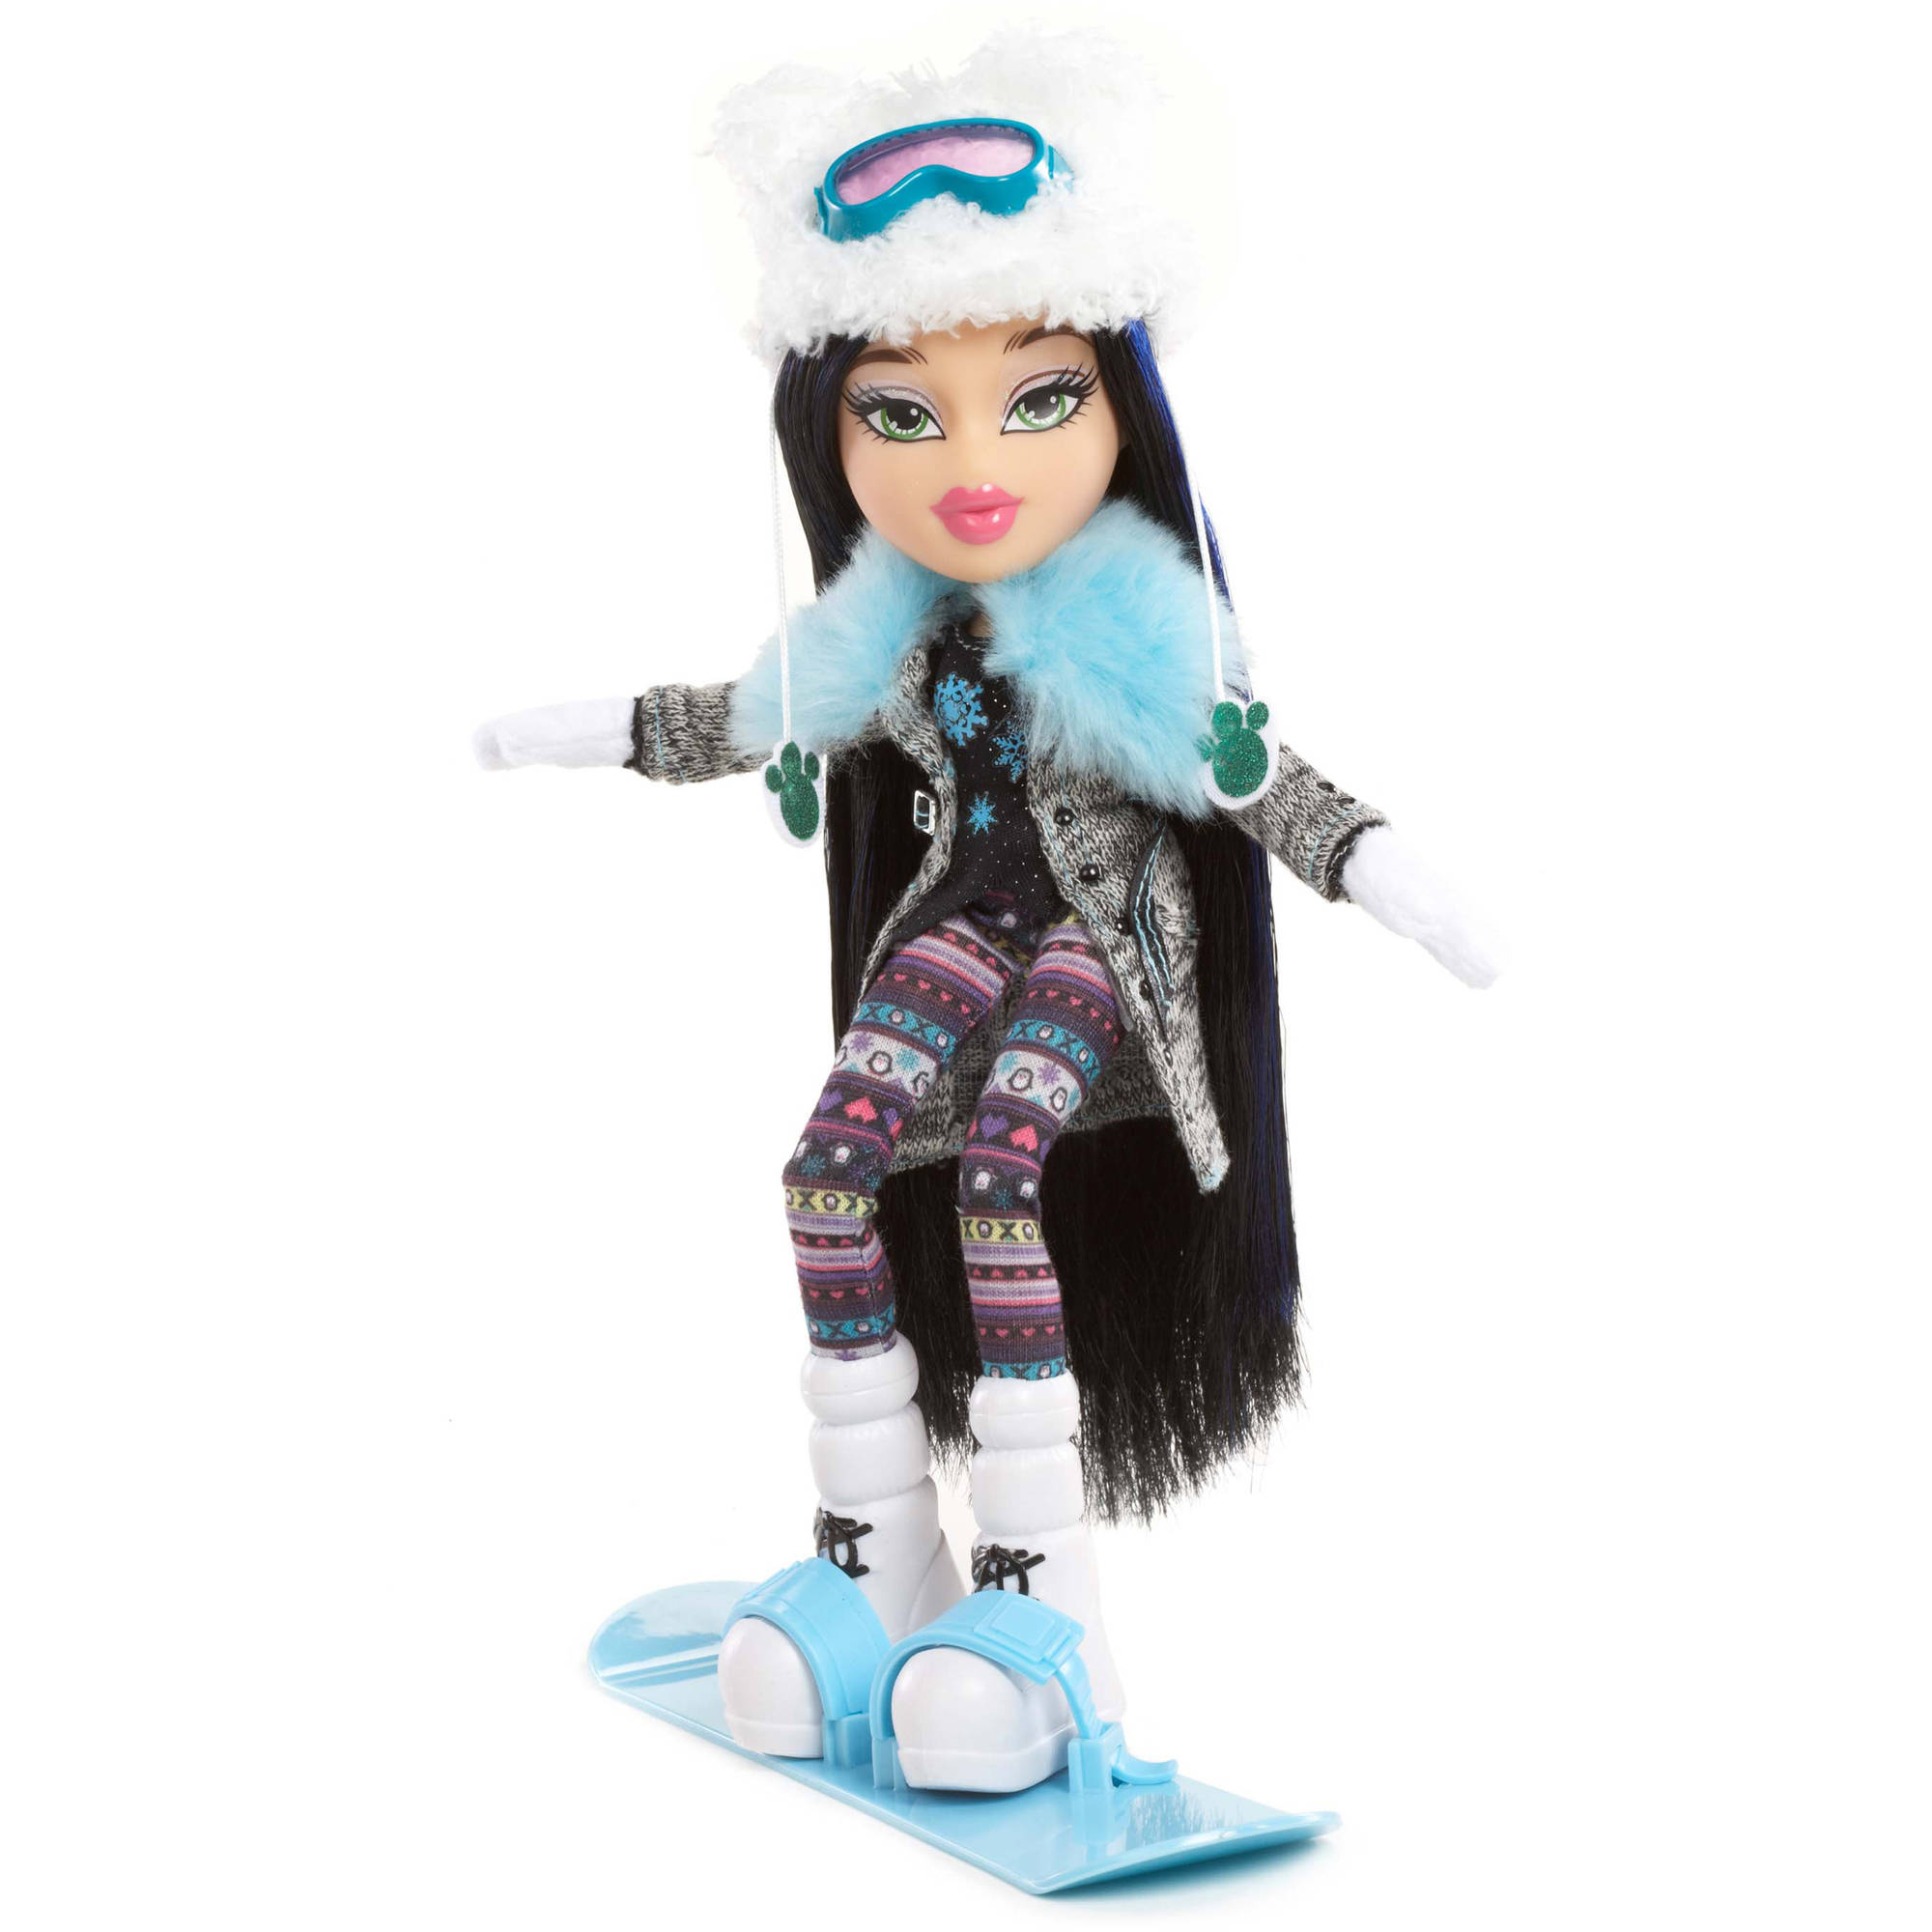 Bratz SnowKissed Doll, Jade by MGA Entertainment